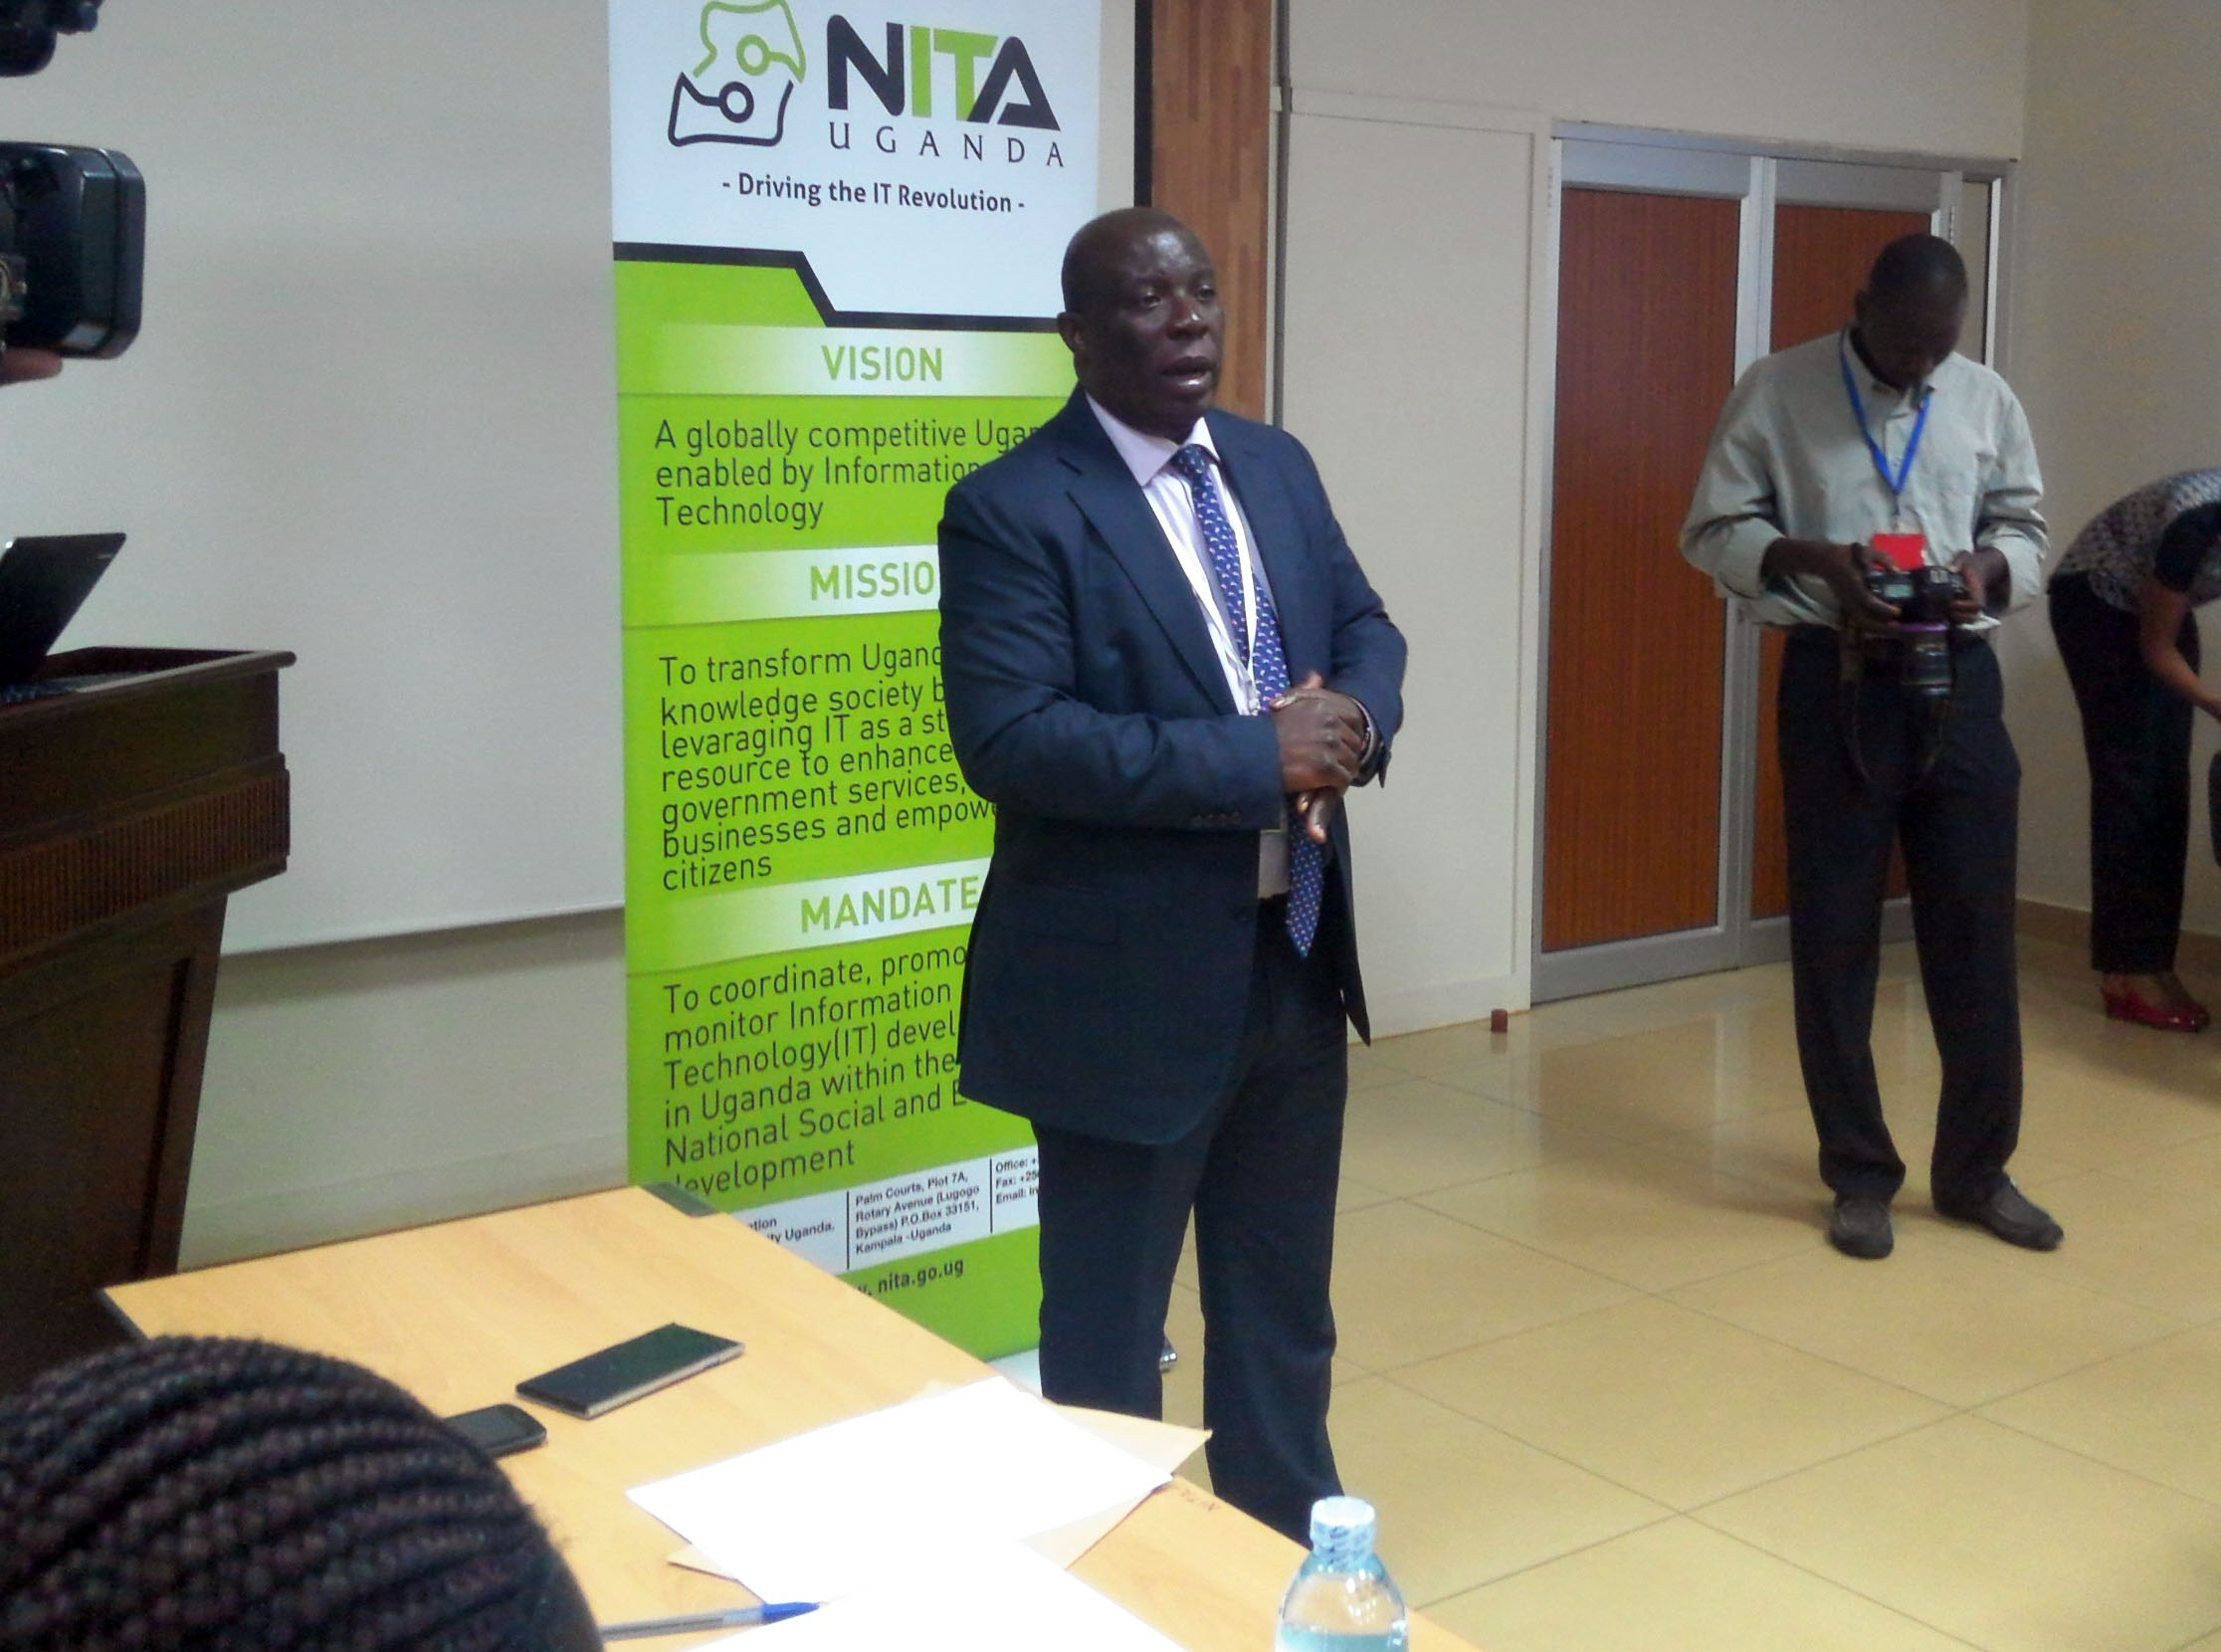 NITA Executive Director, Mr James Saaka also observed that the progress we are making as a country with internet penetration also presents challenges.